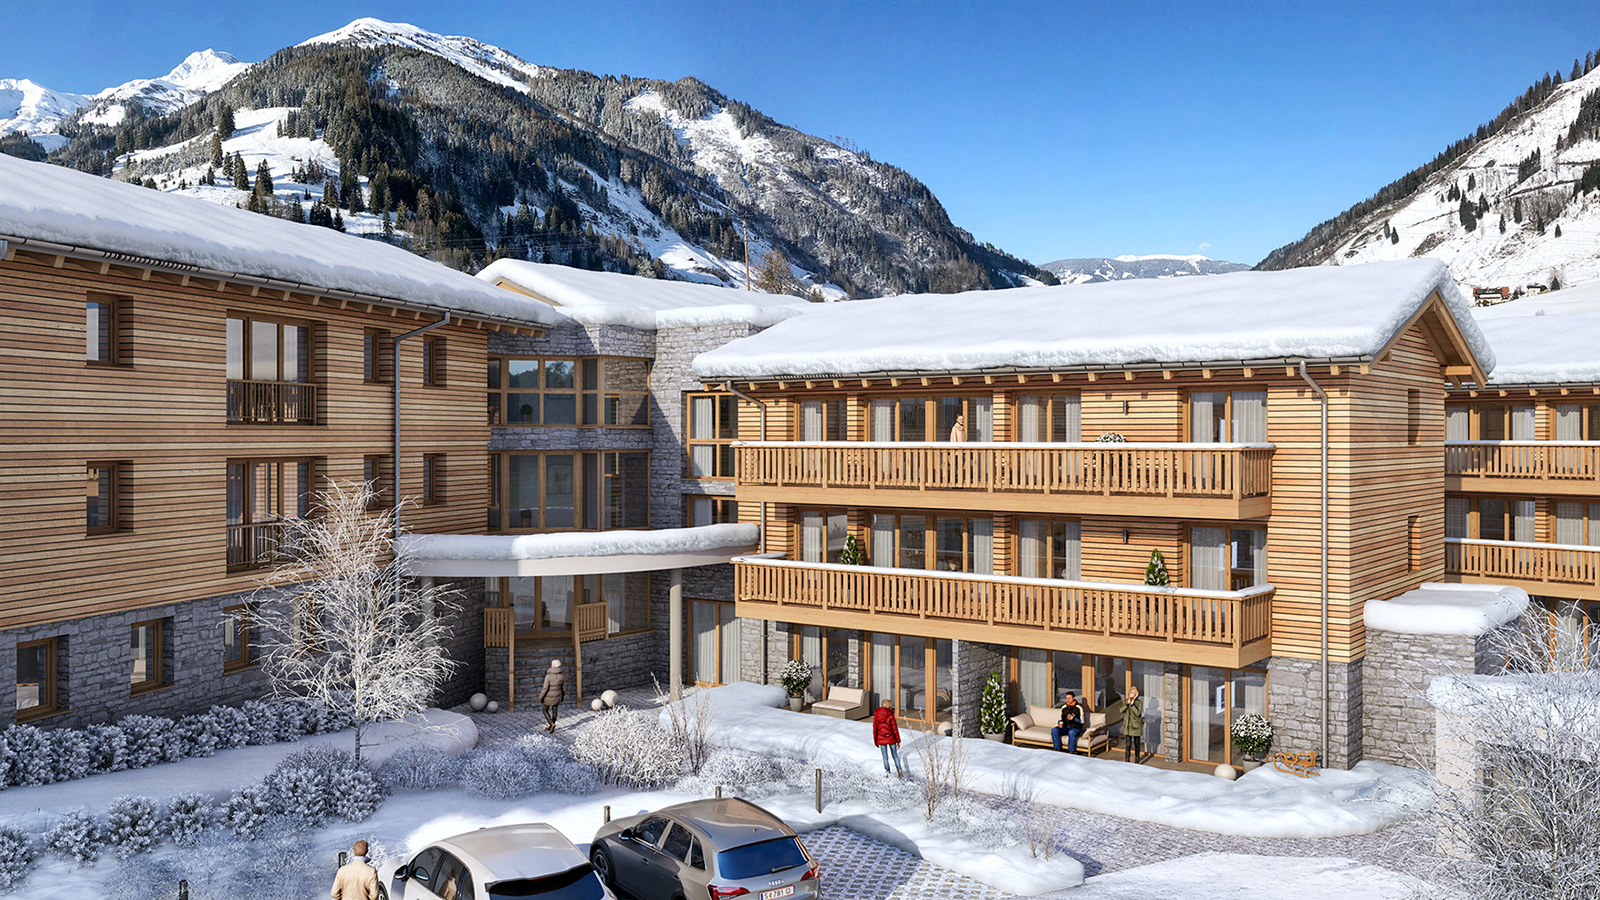 Golden Ski Residences Apartments, Austria